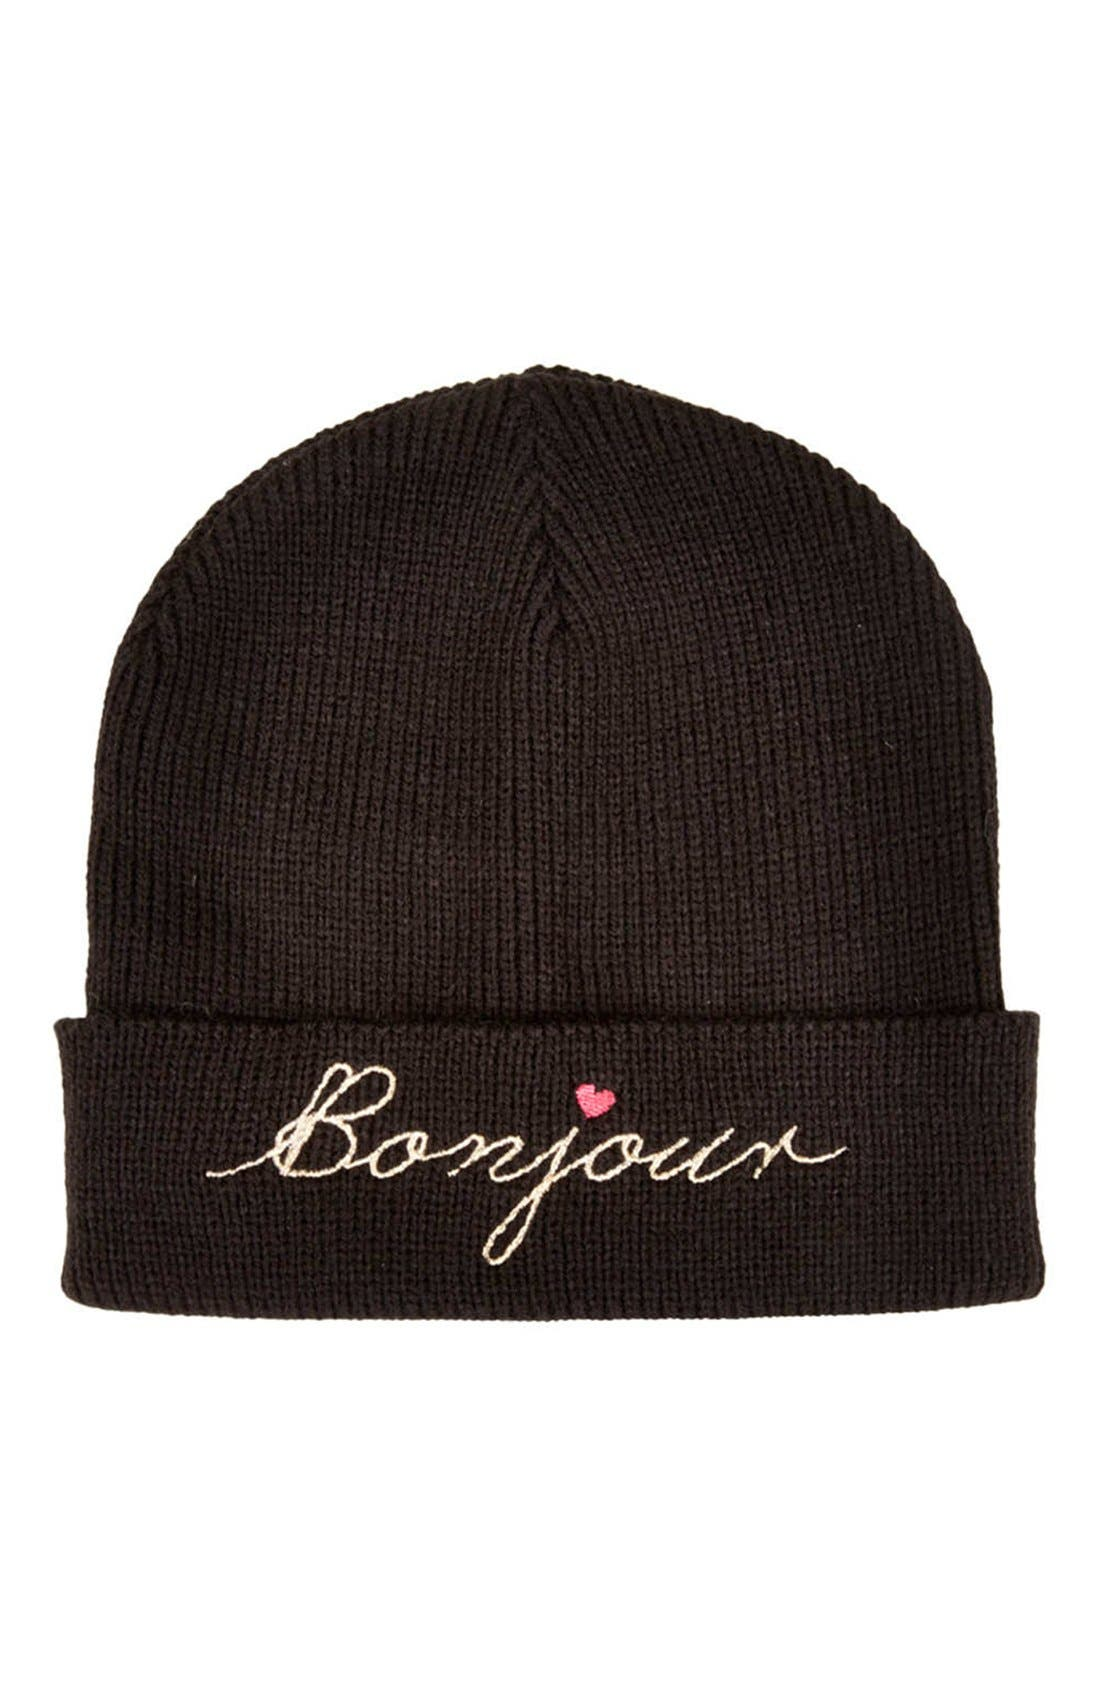 Alternate Image 1 Selected - Topshop 'Bonjour' Embroidered Beanie